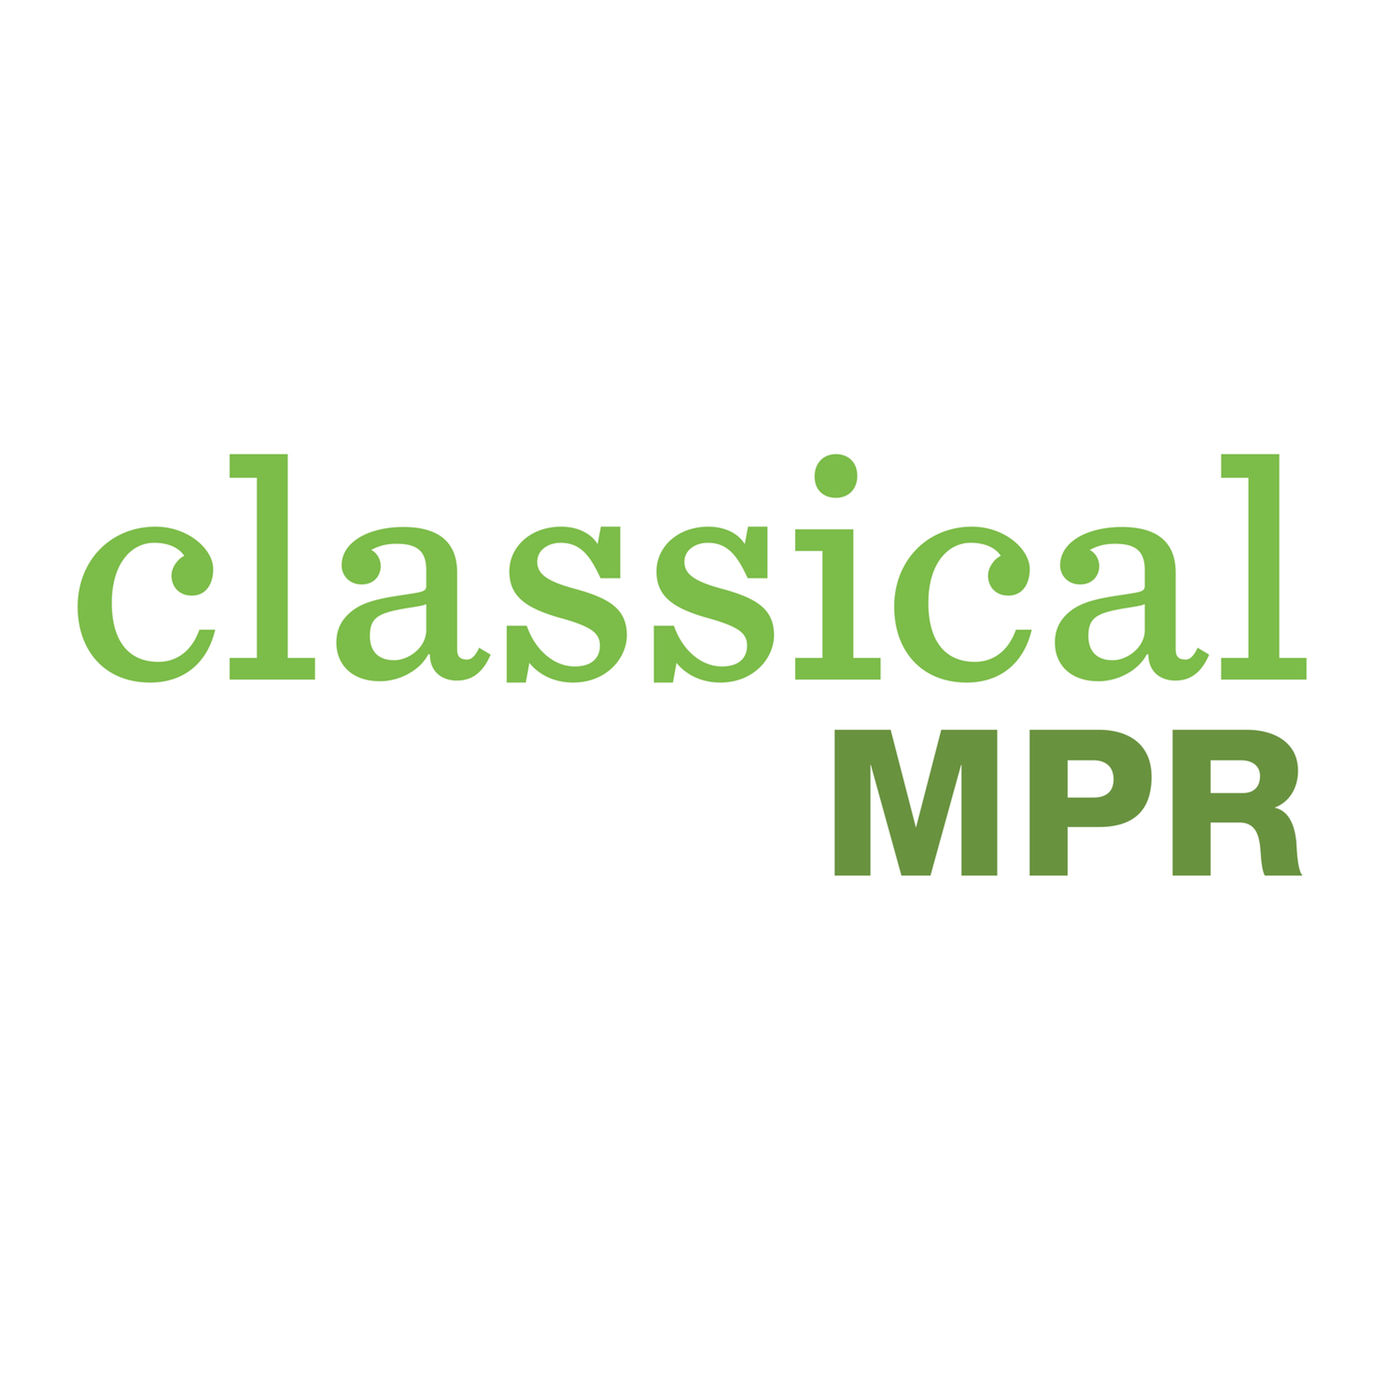 Thomas Tallis on MPR - Check out our interview on MPR! Click the box to the left for the full article.